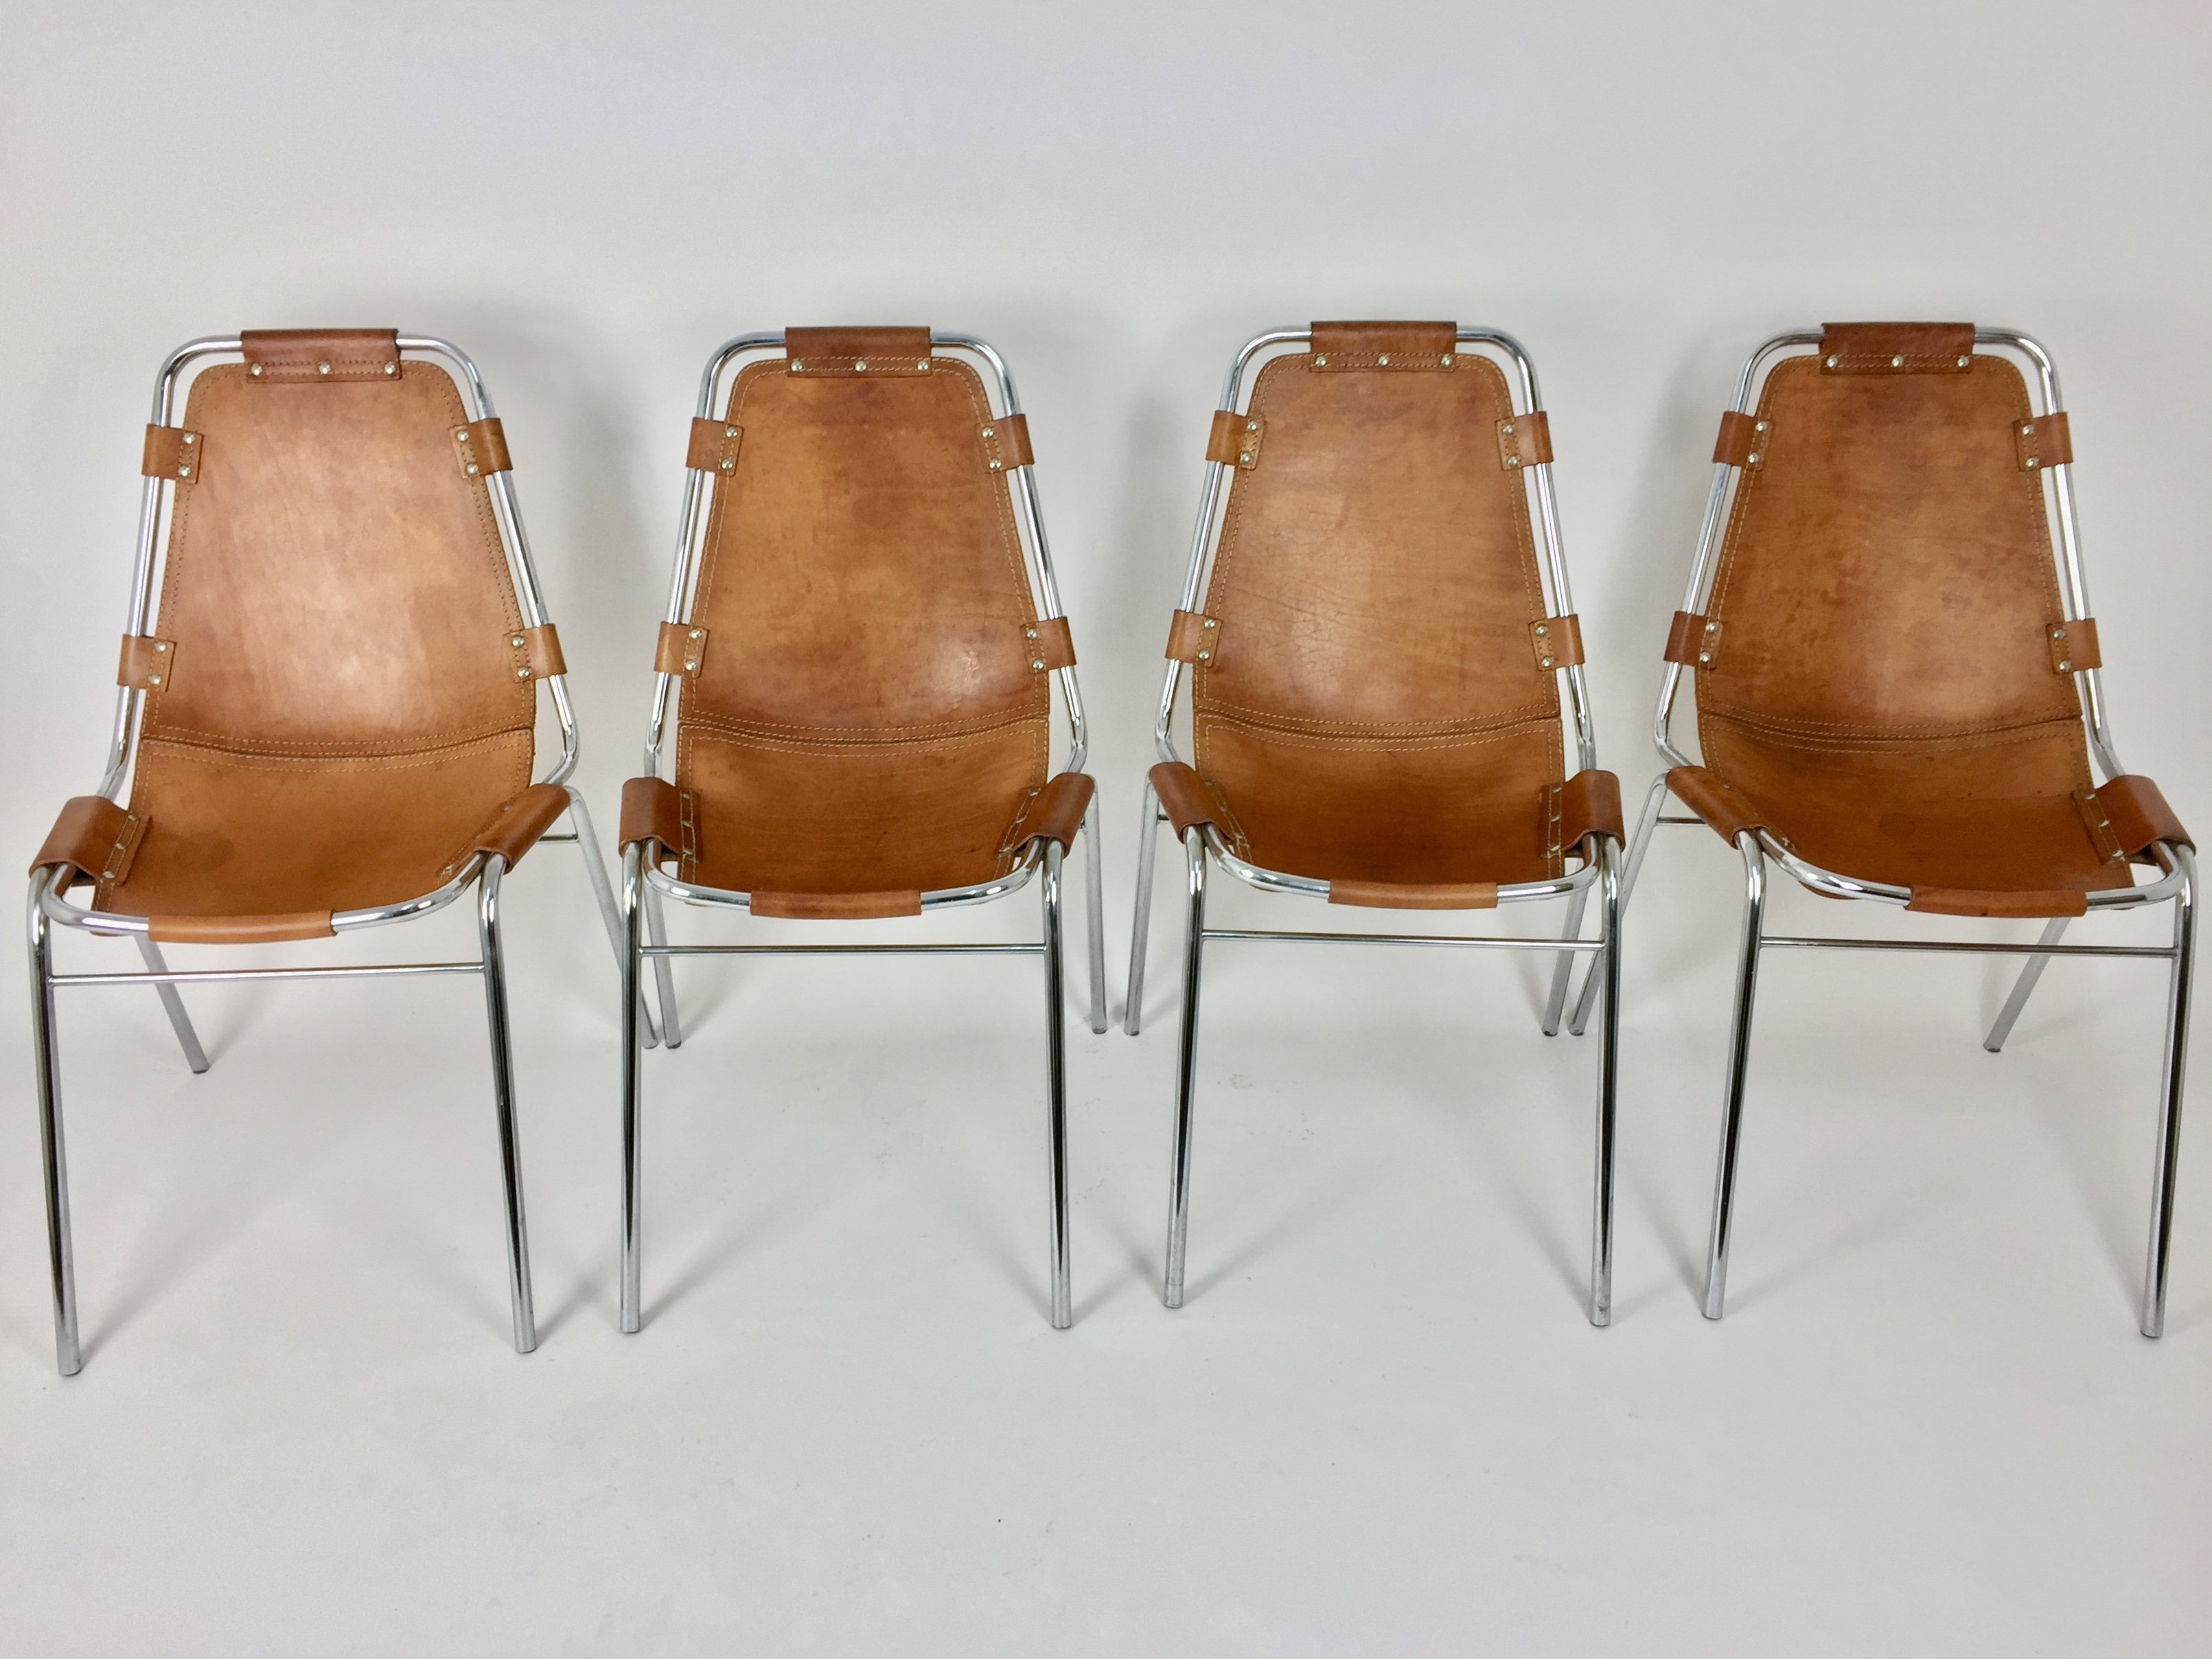 set of 4 les arcs dinner chairs by charlotte perriand 1960s 71275. Black Bedroom Furniture Sets. Home Design Ideas